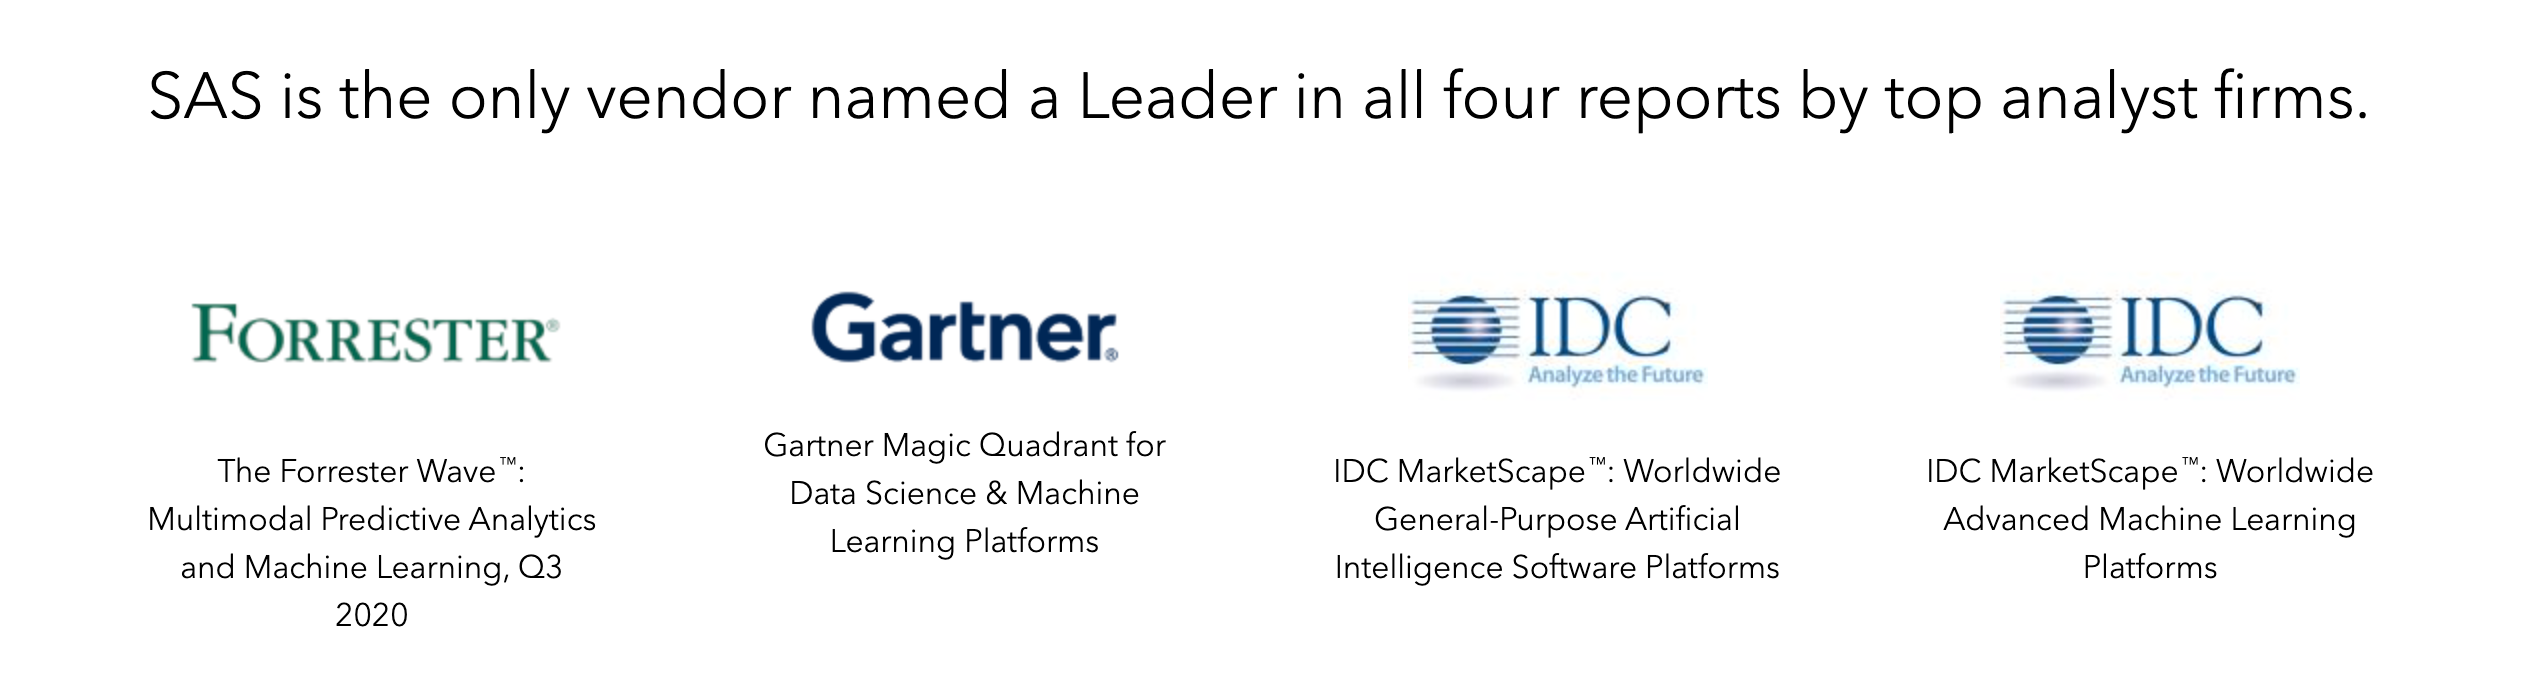 AS is the only vendor named a Leader in all four reports by top analyst firms.